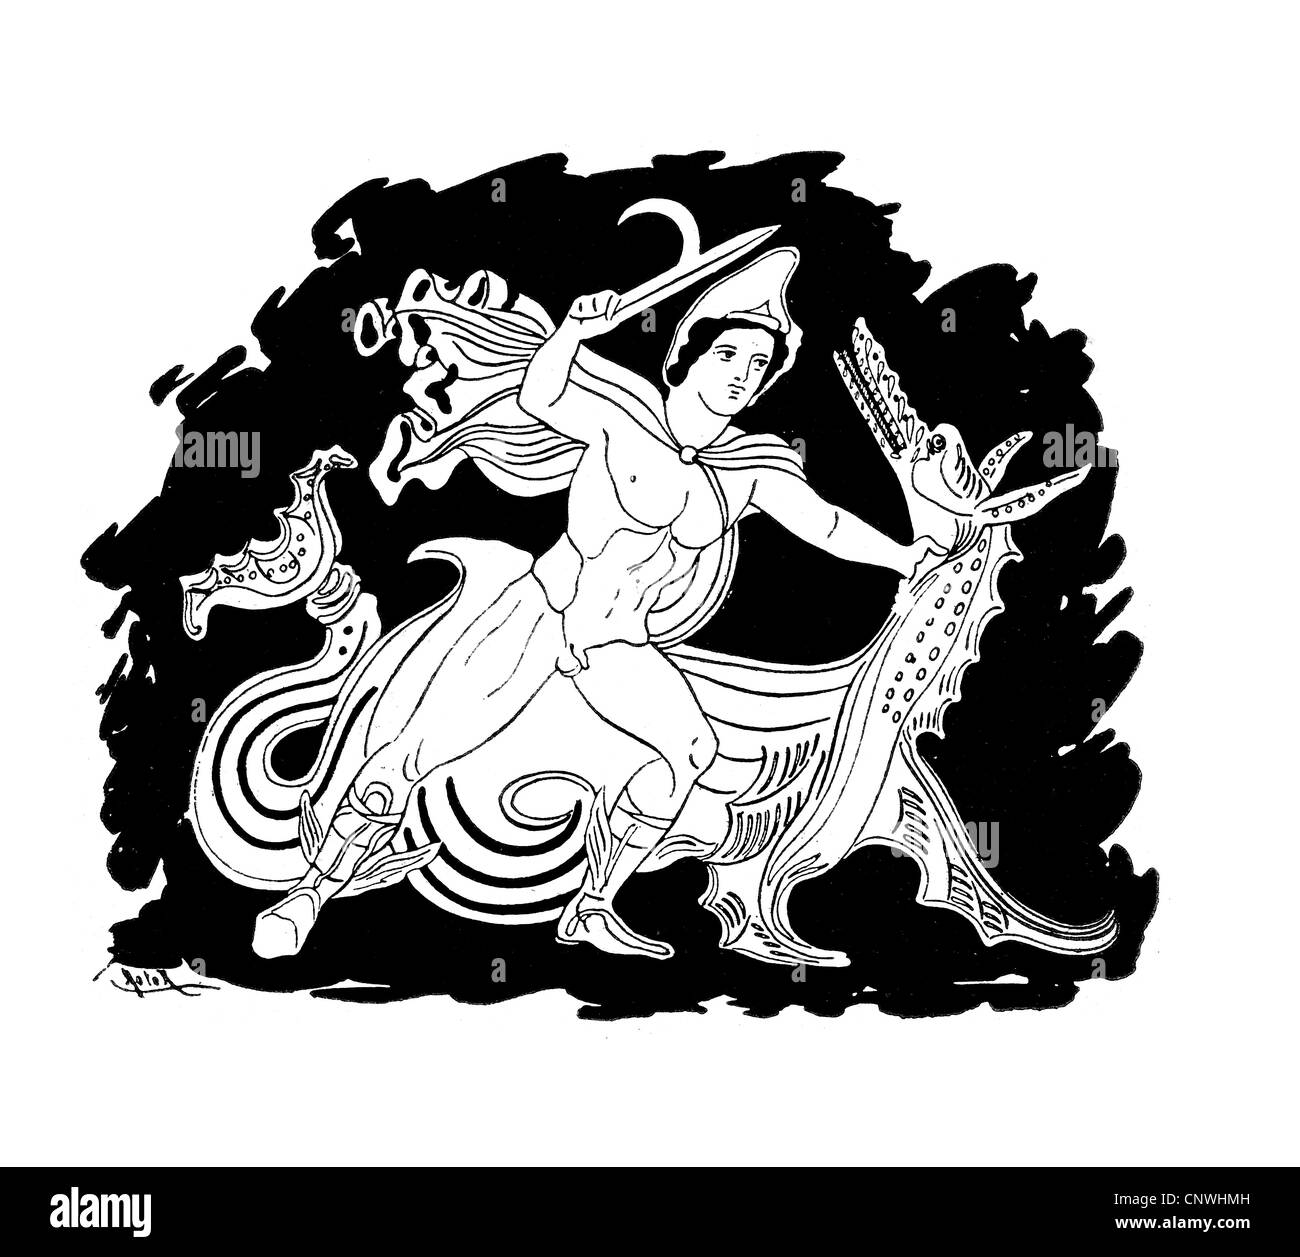 An ancient Greek hero slaying a dragon or worm - Stock Image